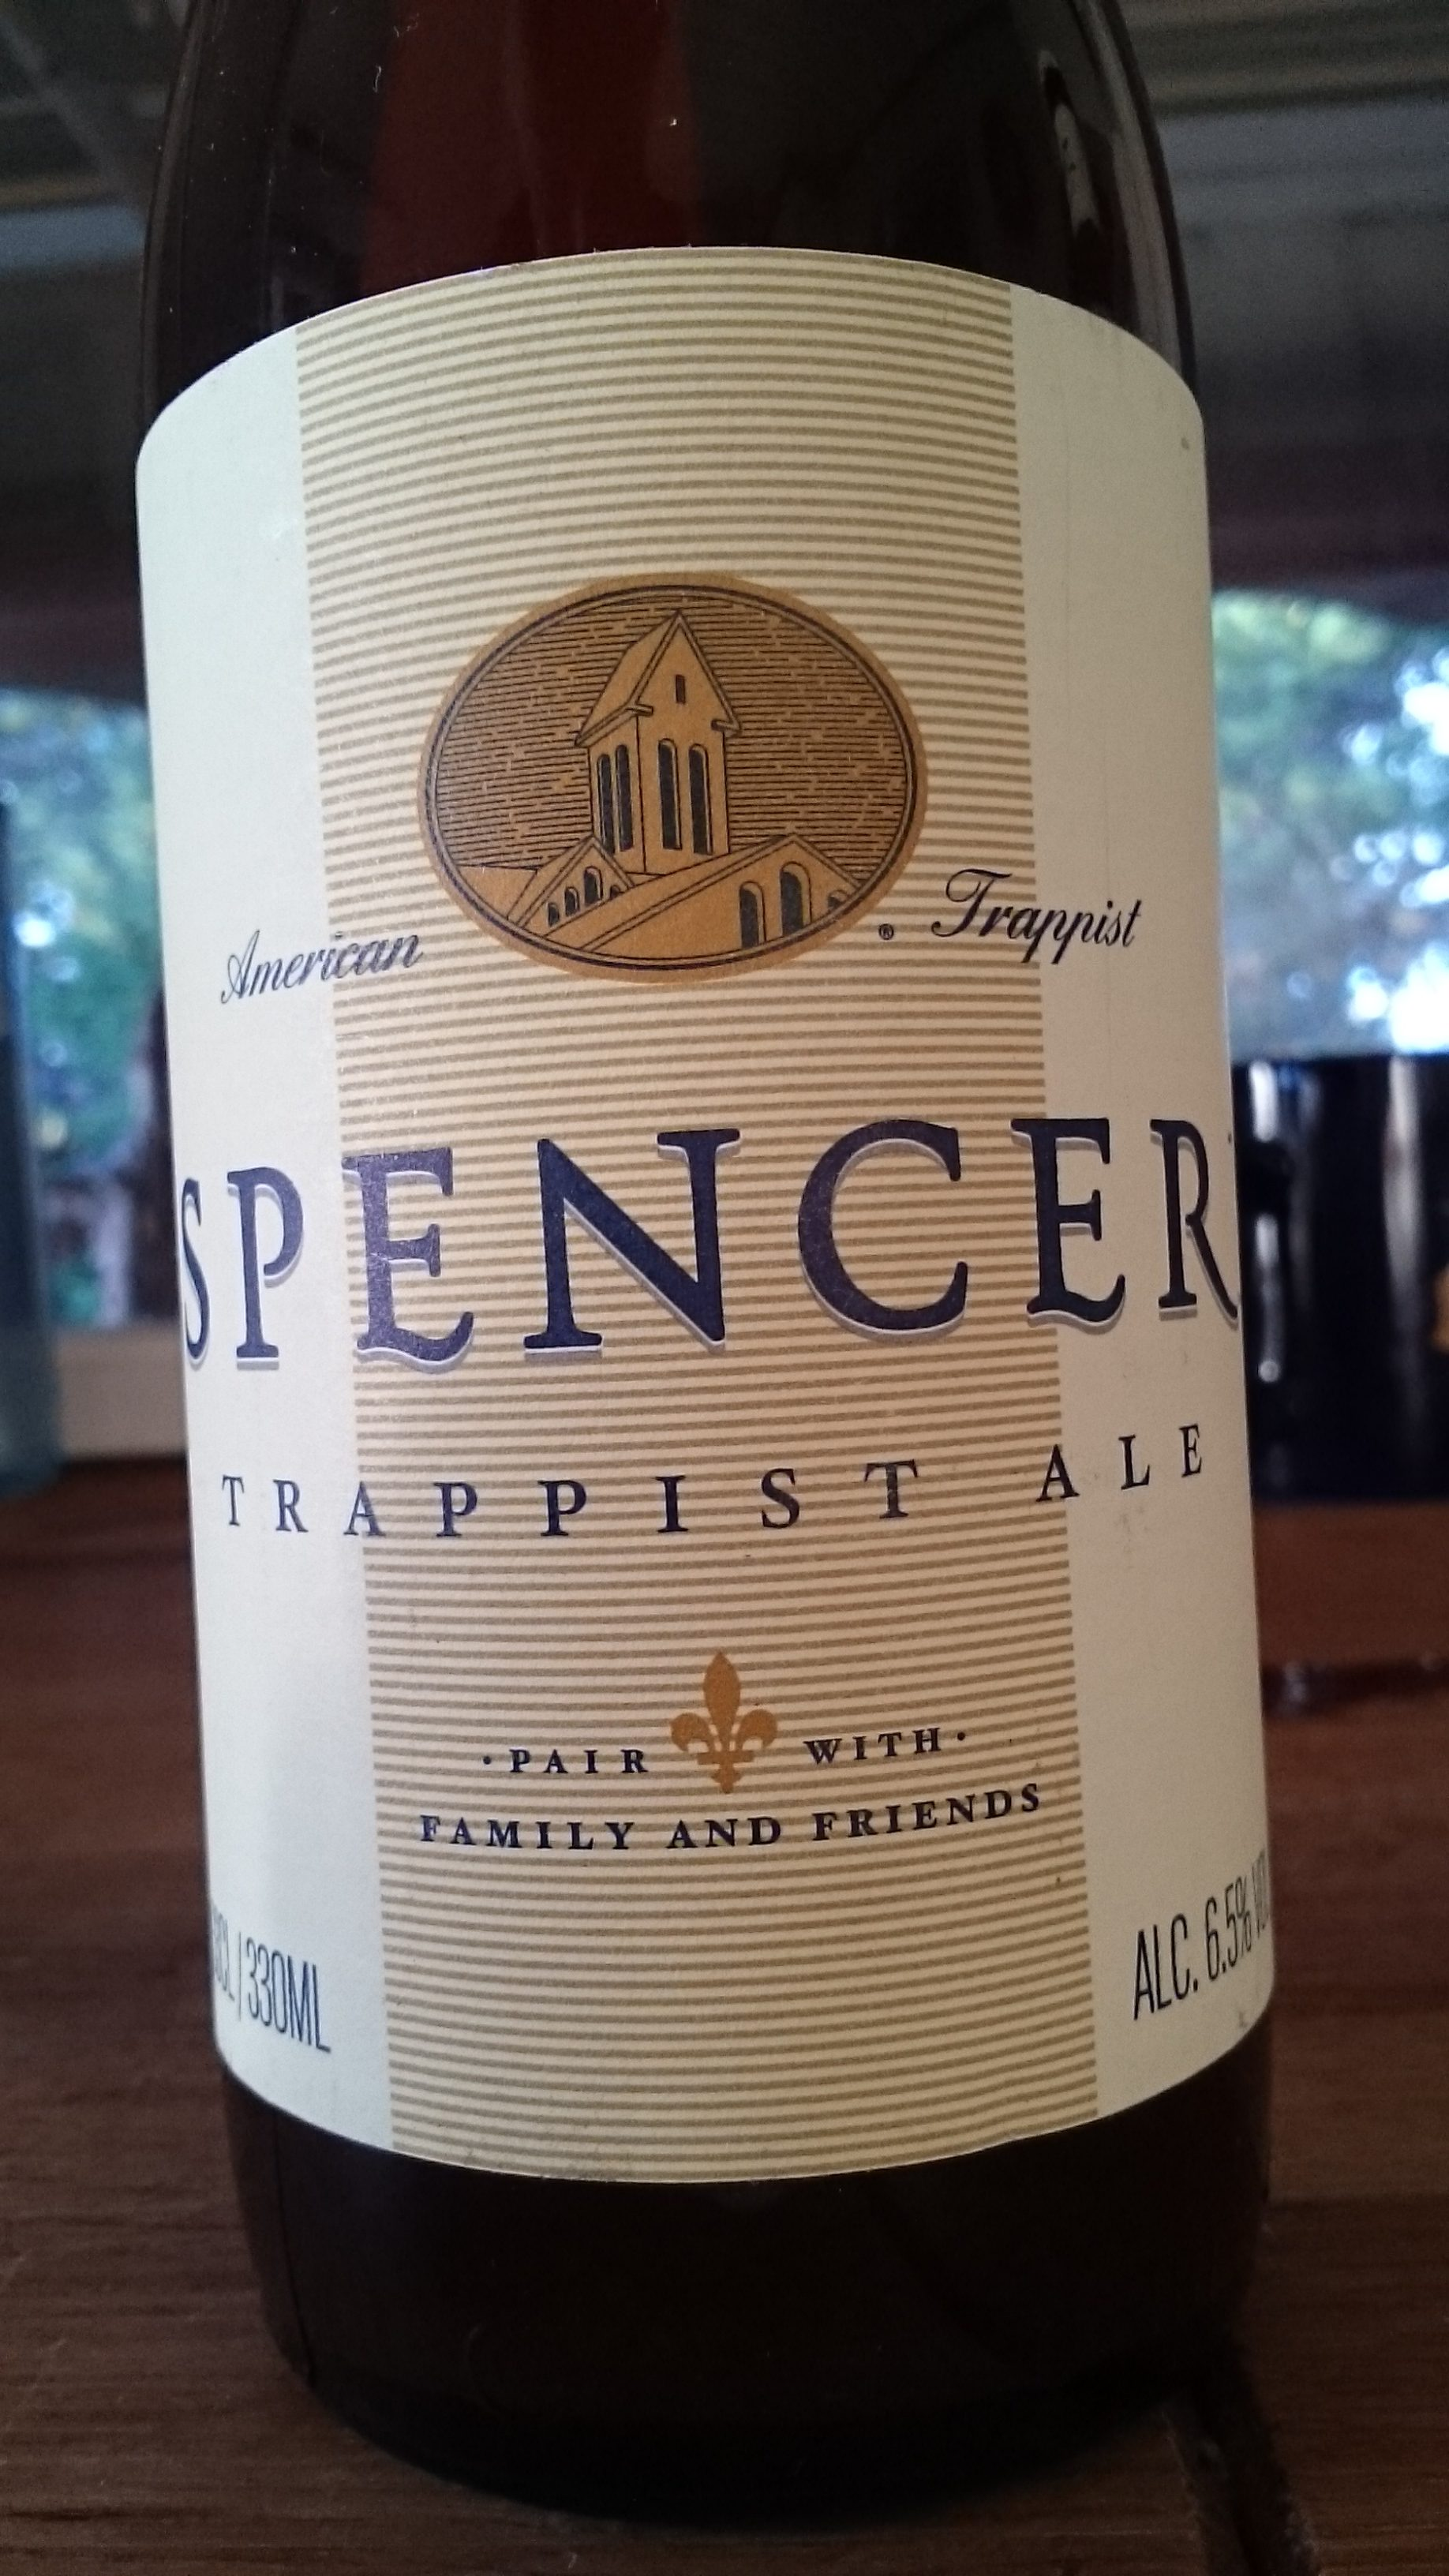 Spencer: Trappist Ale